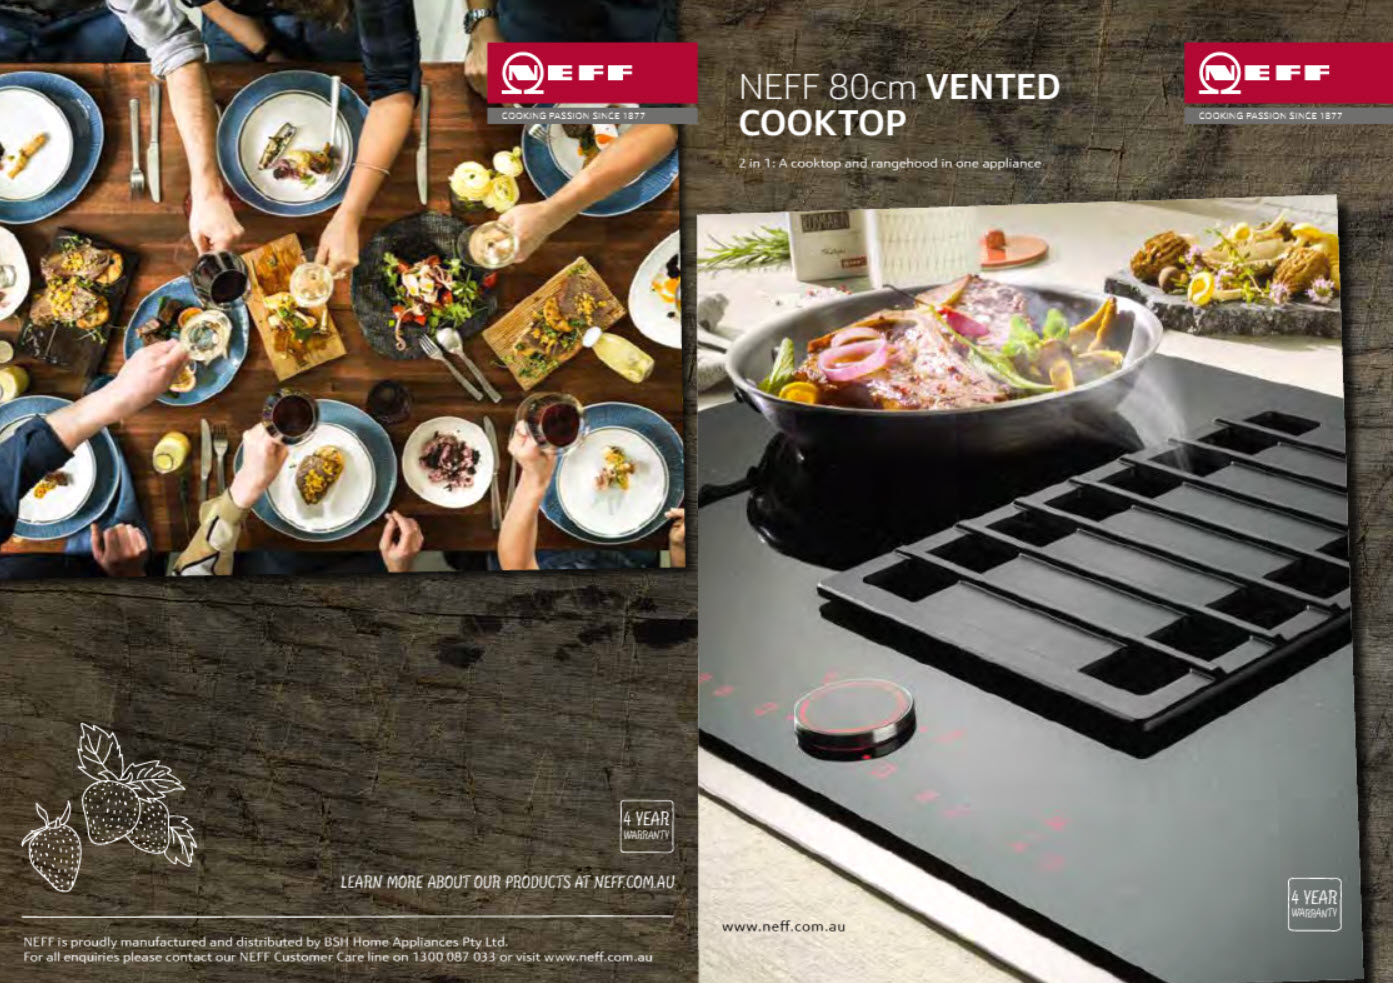 NEFF T58TS6BN0 80cm Vented FlexInduction Cooktop Overview Brochure 1